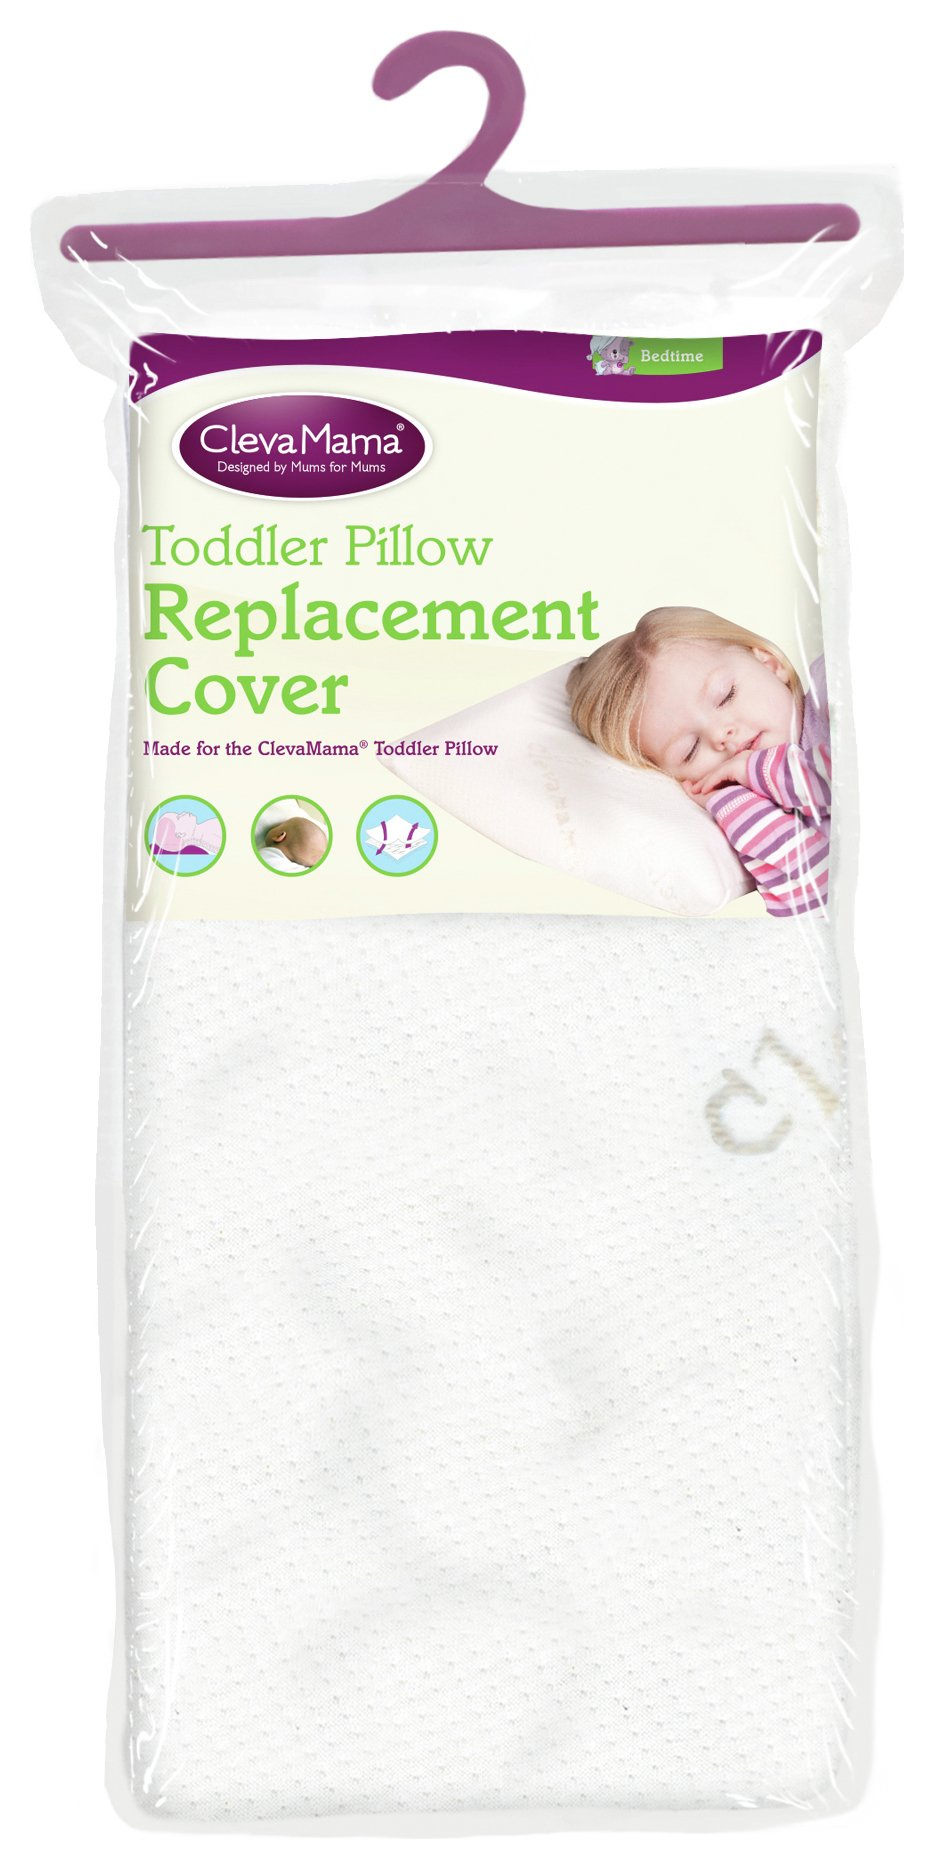 Image of Clevamama - ClevaFoam Replacement - Toddler Pillowcase